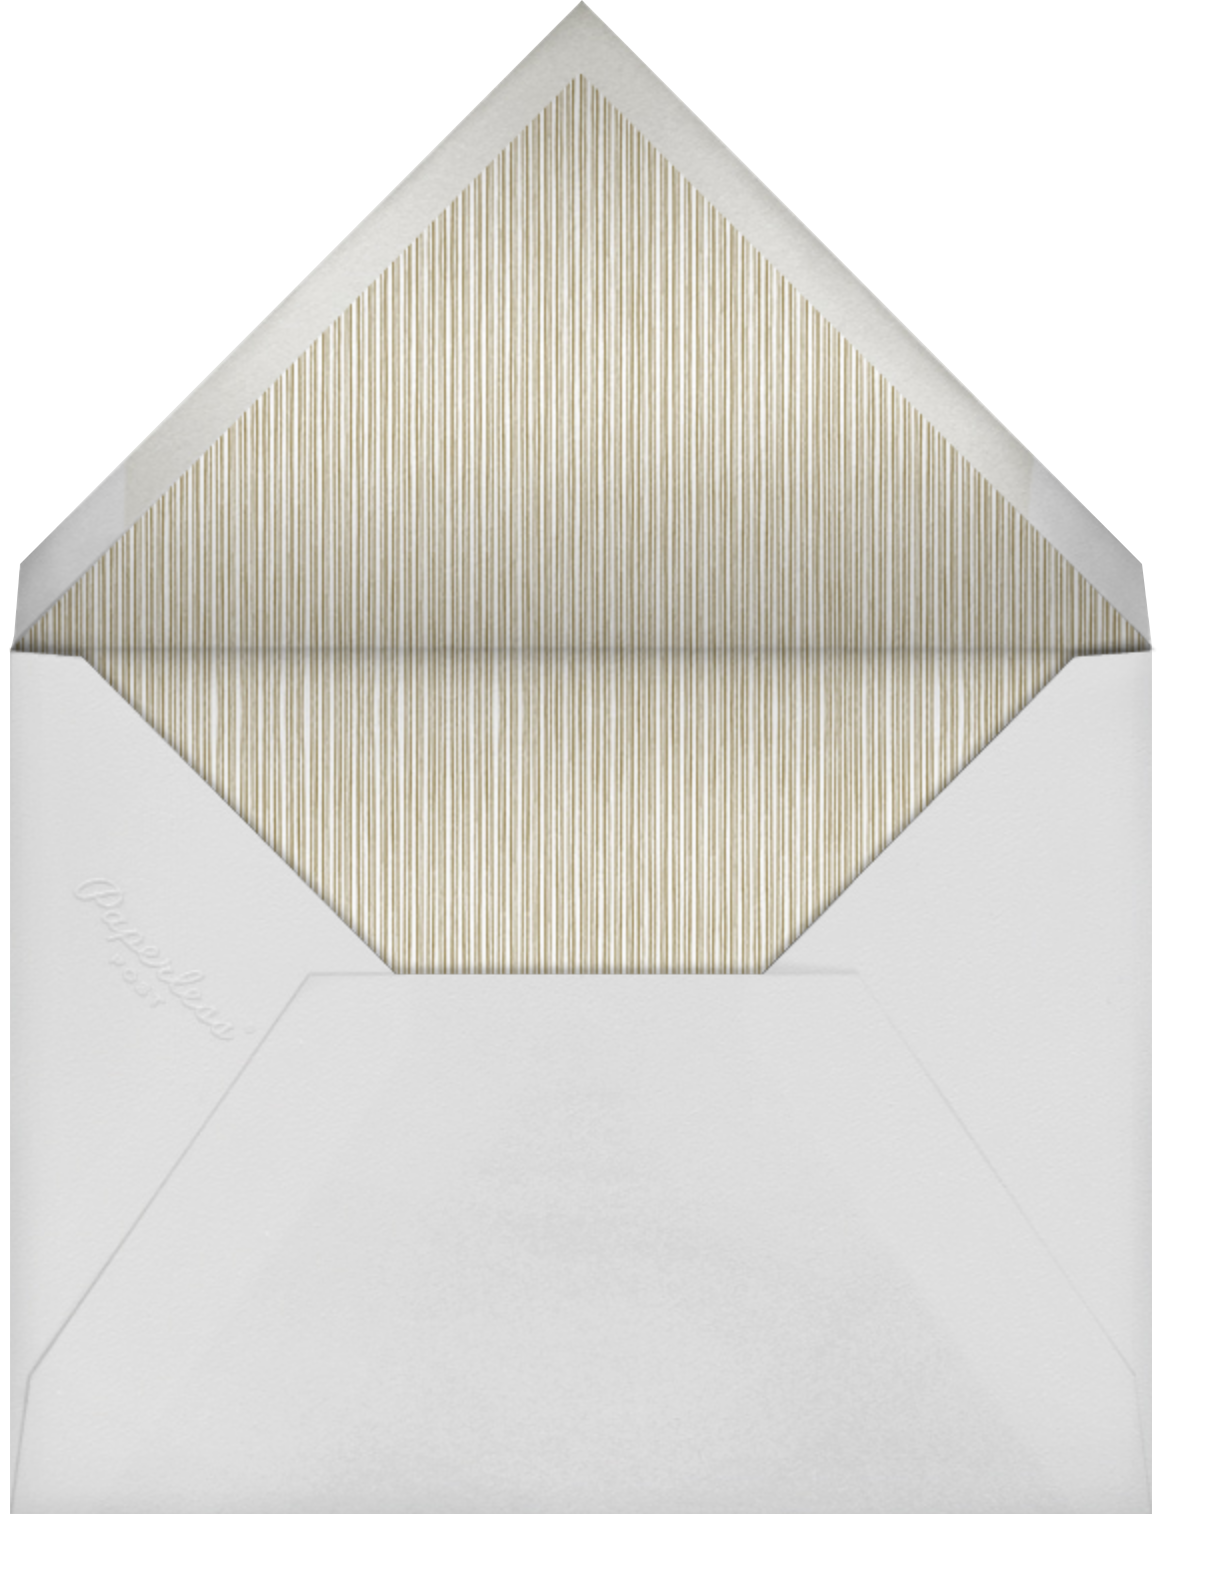 Dotted Band - Paperless Post - Envelope